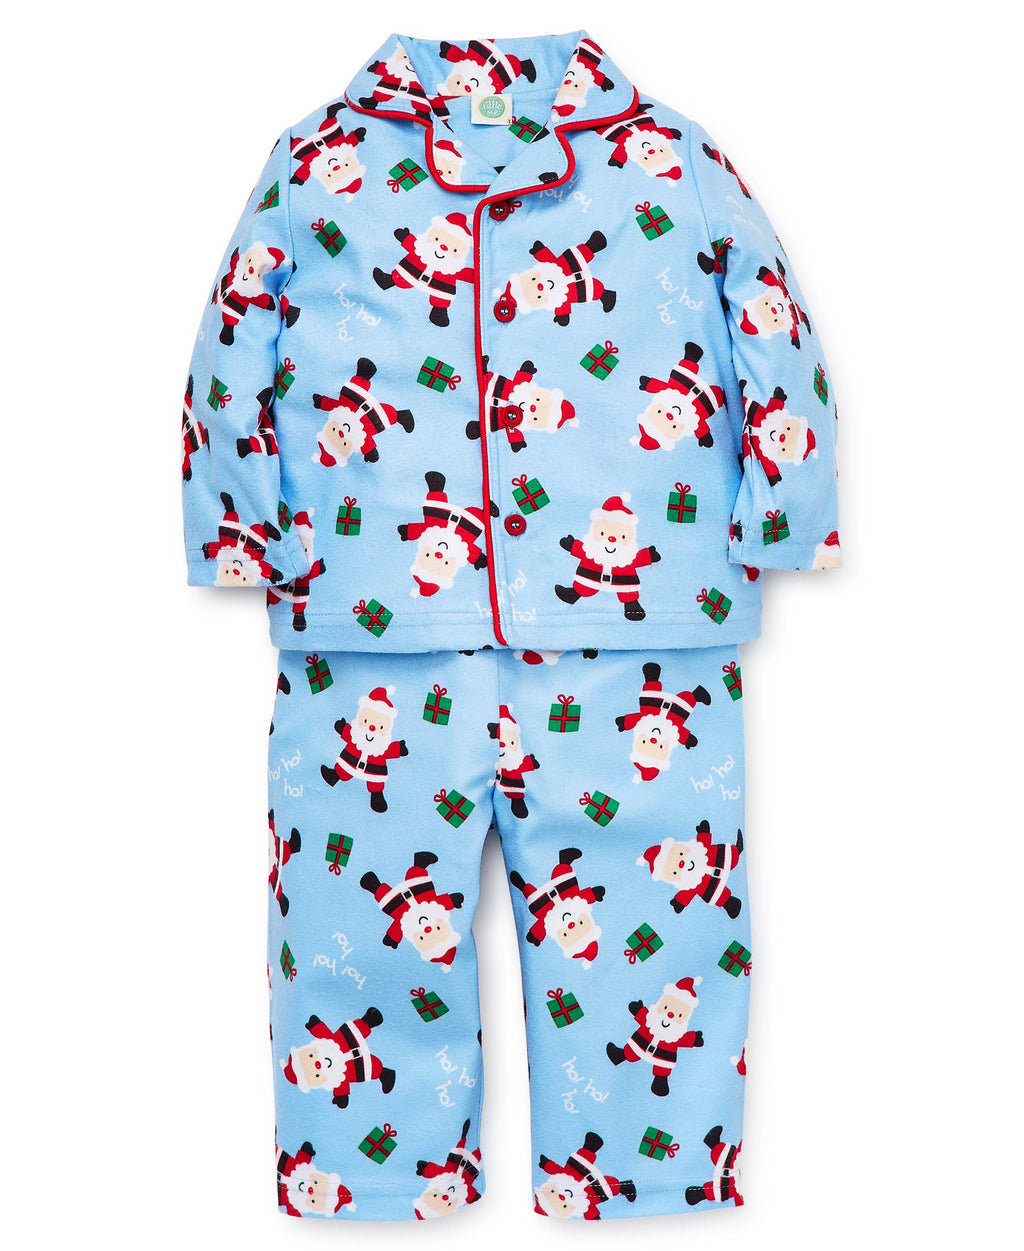 Blue Holiday Pajama Set